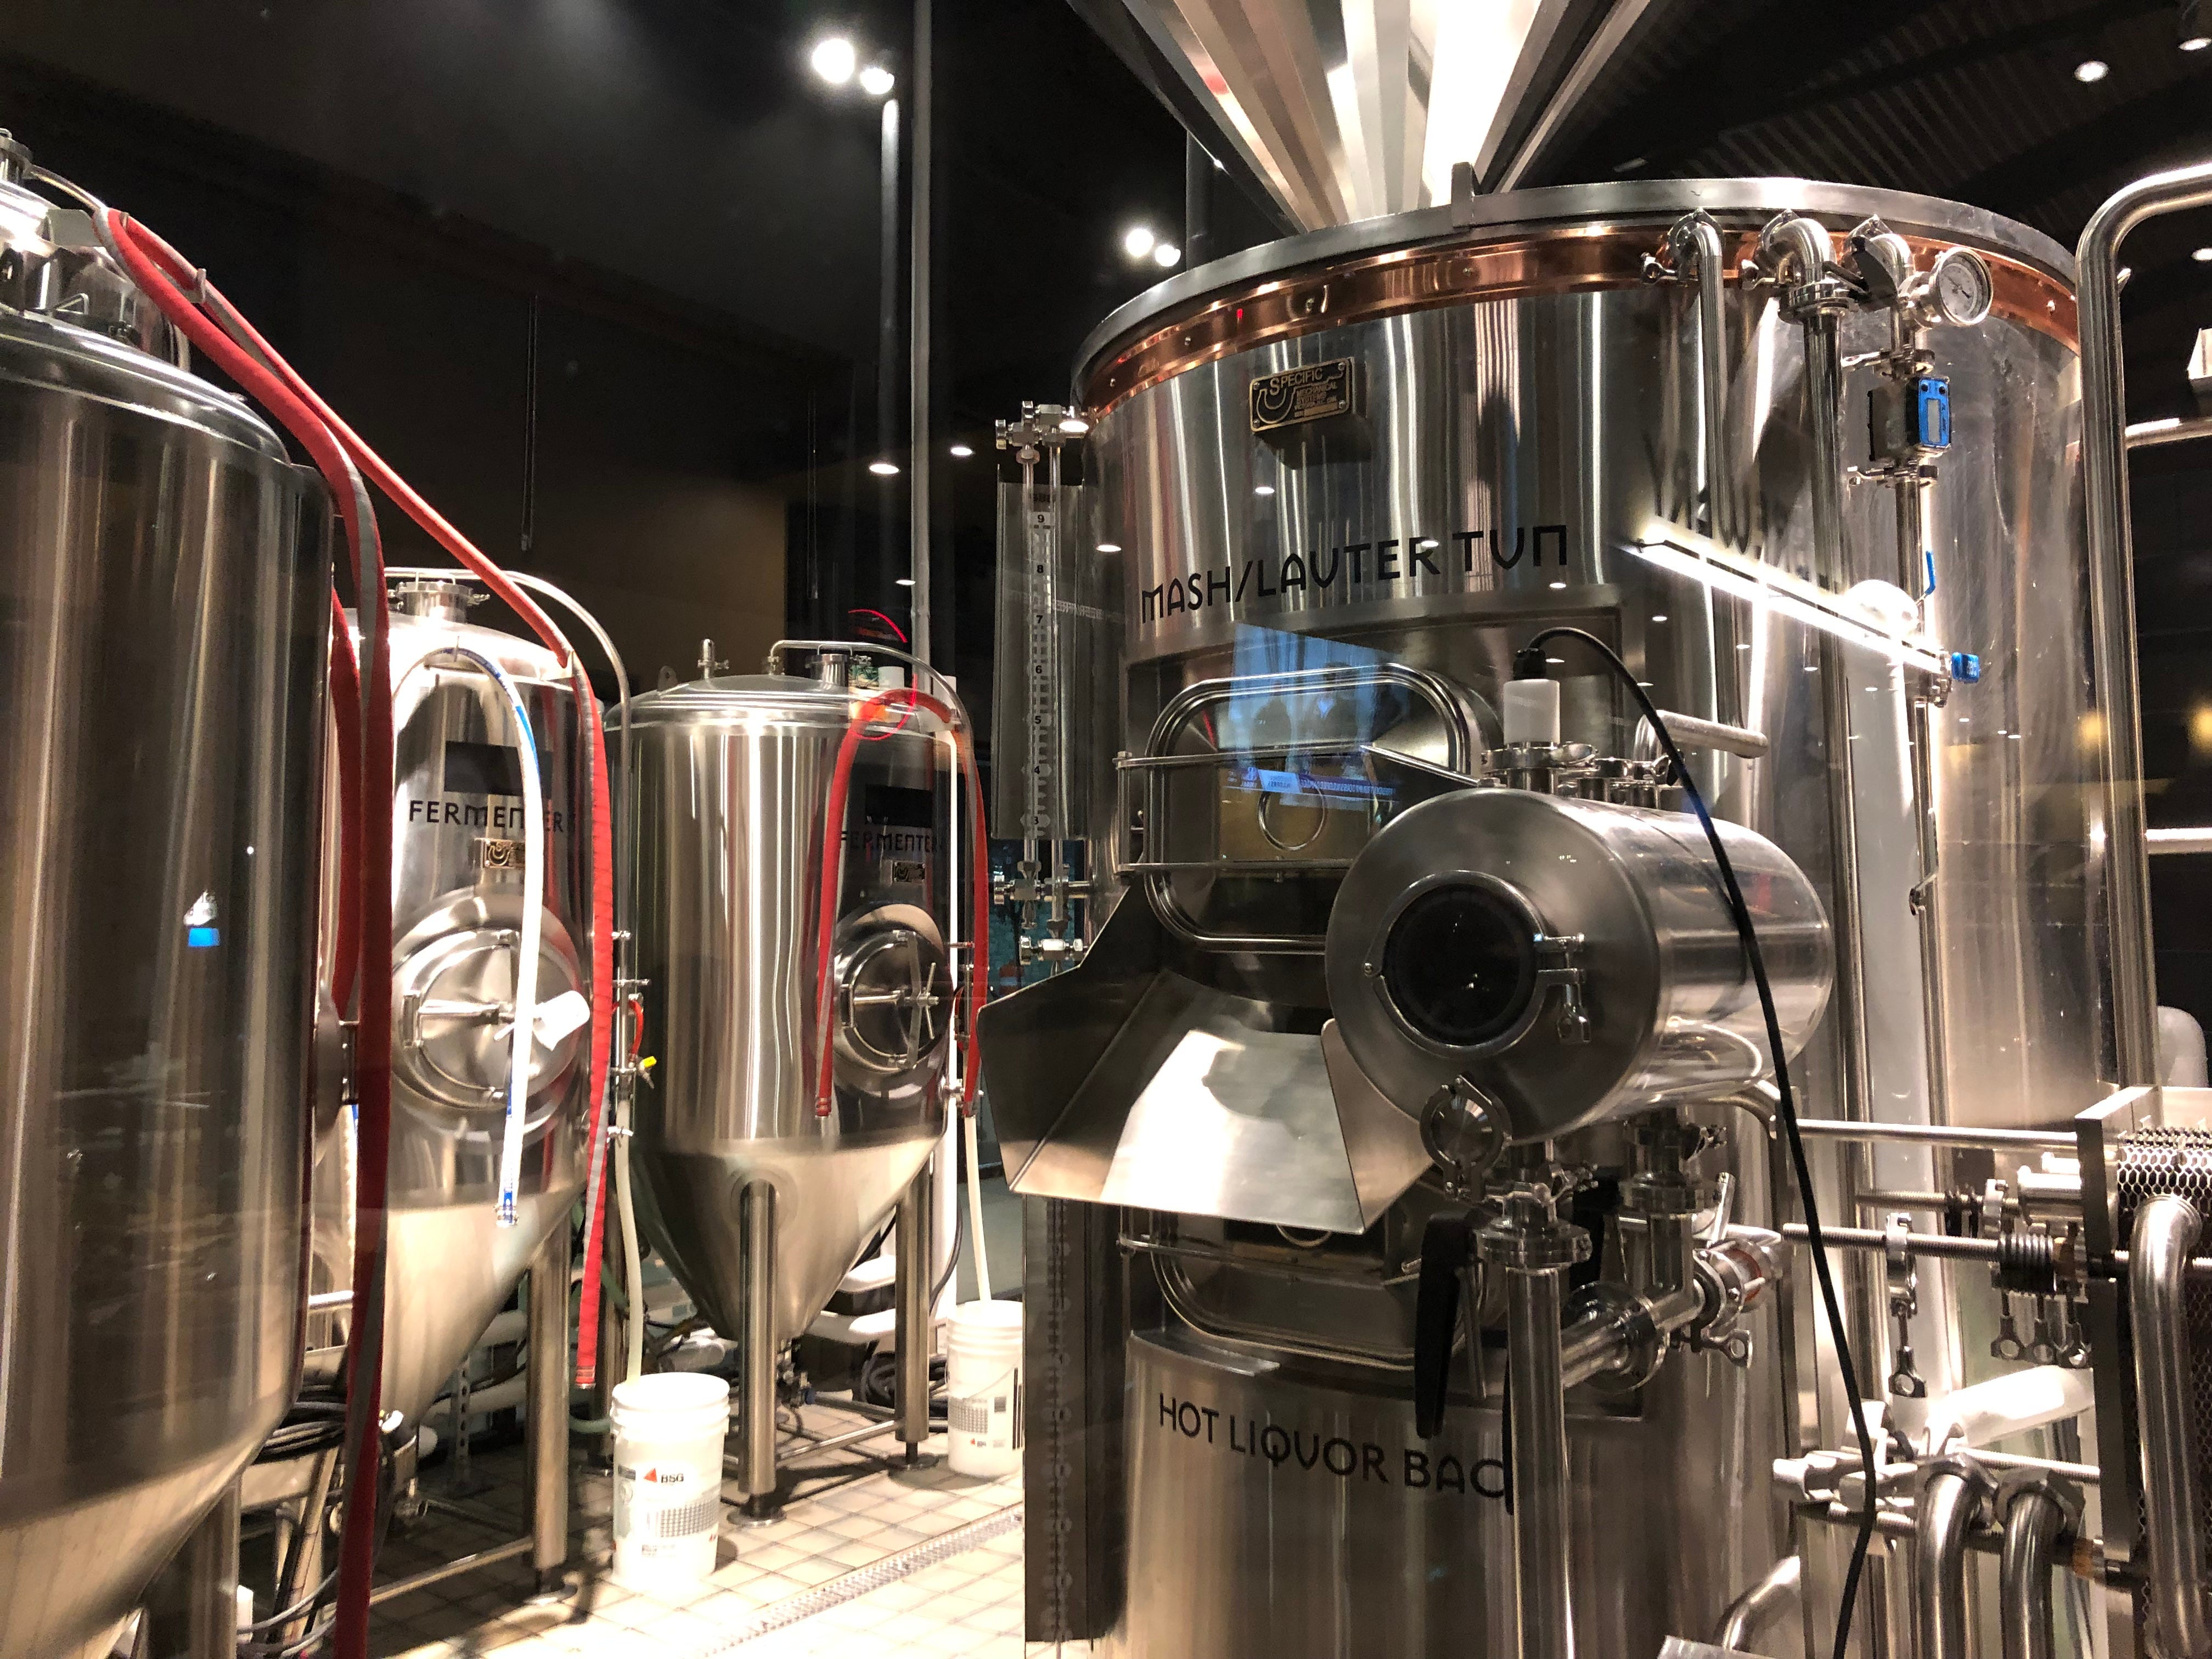 Another look at the 10-barrel brewing system inside Iron Hill Brewery & Restaurant in Hershey.